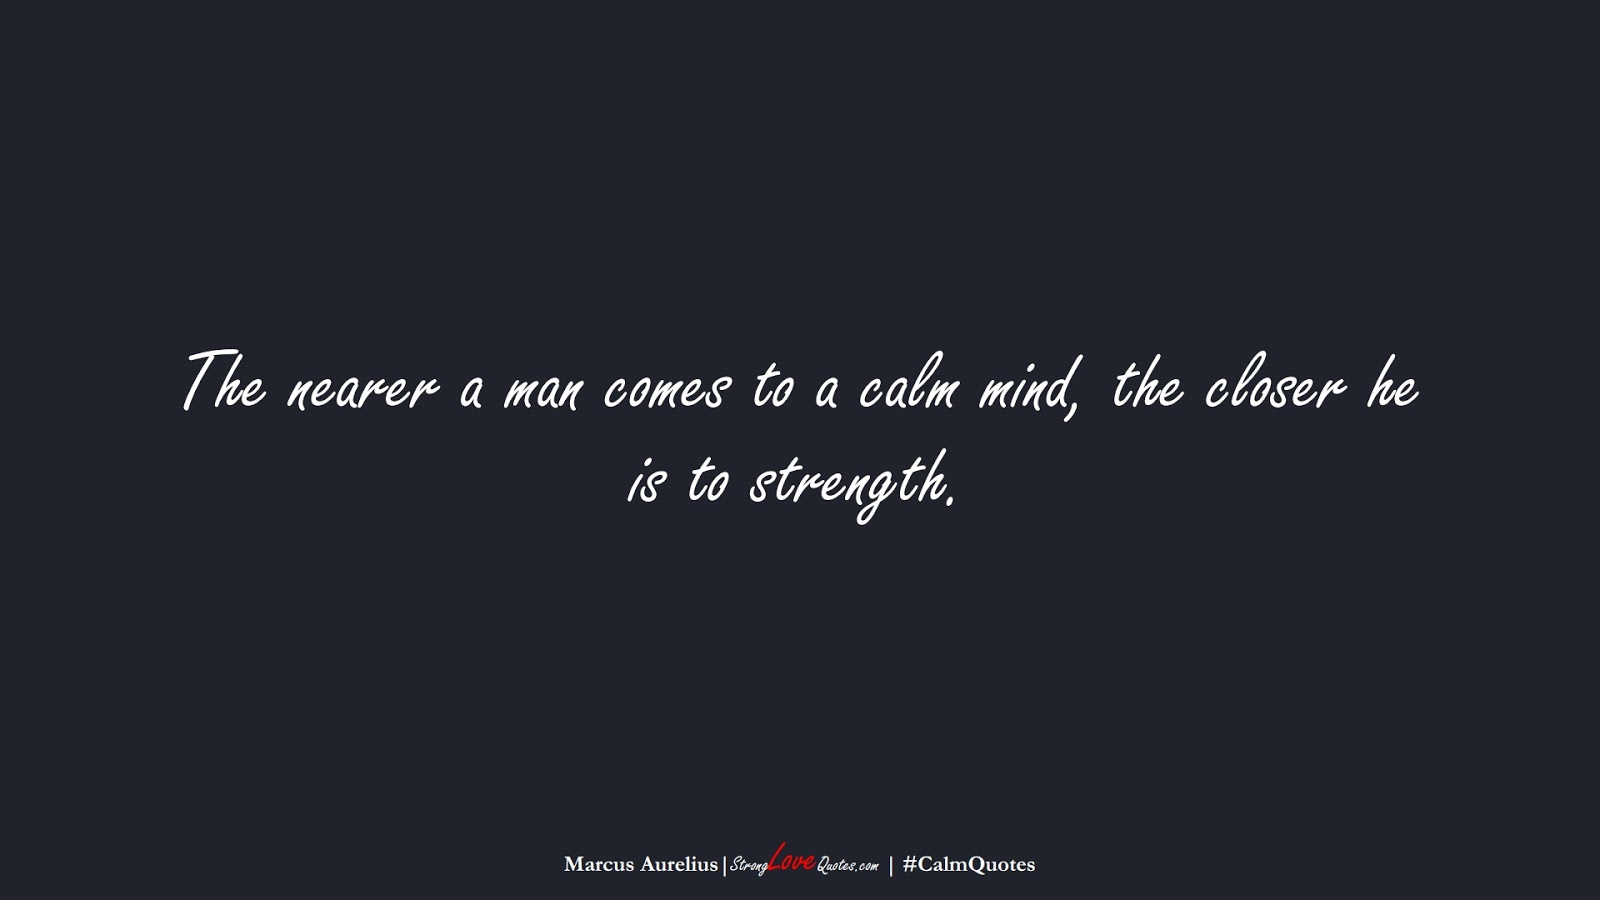 The nearer a man comes to a calm mind, the closer he is to strength. (Marcus Aurelius);  #CalmQuotes